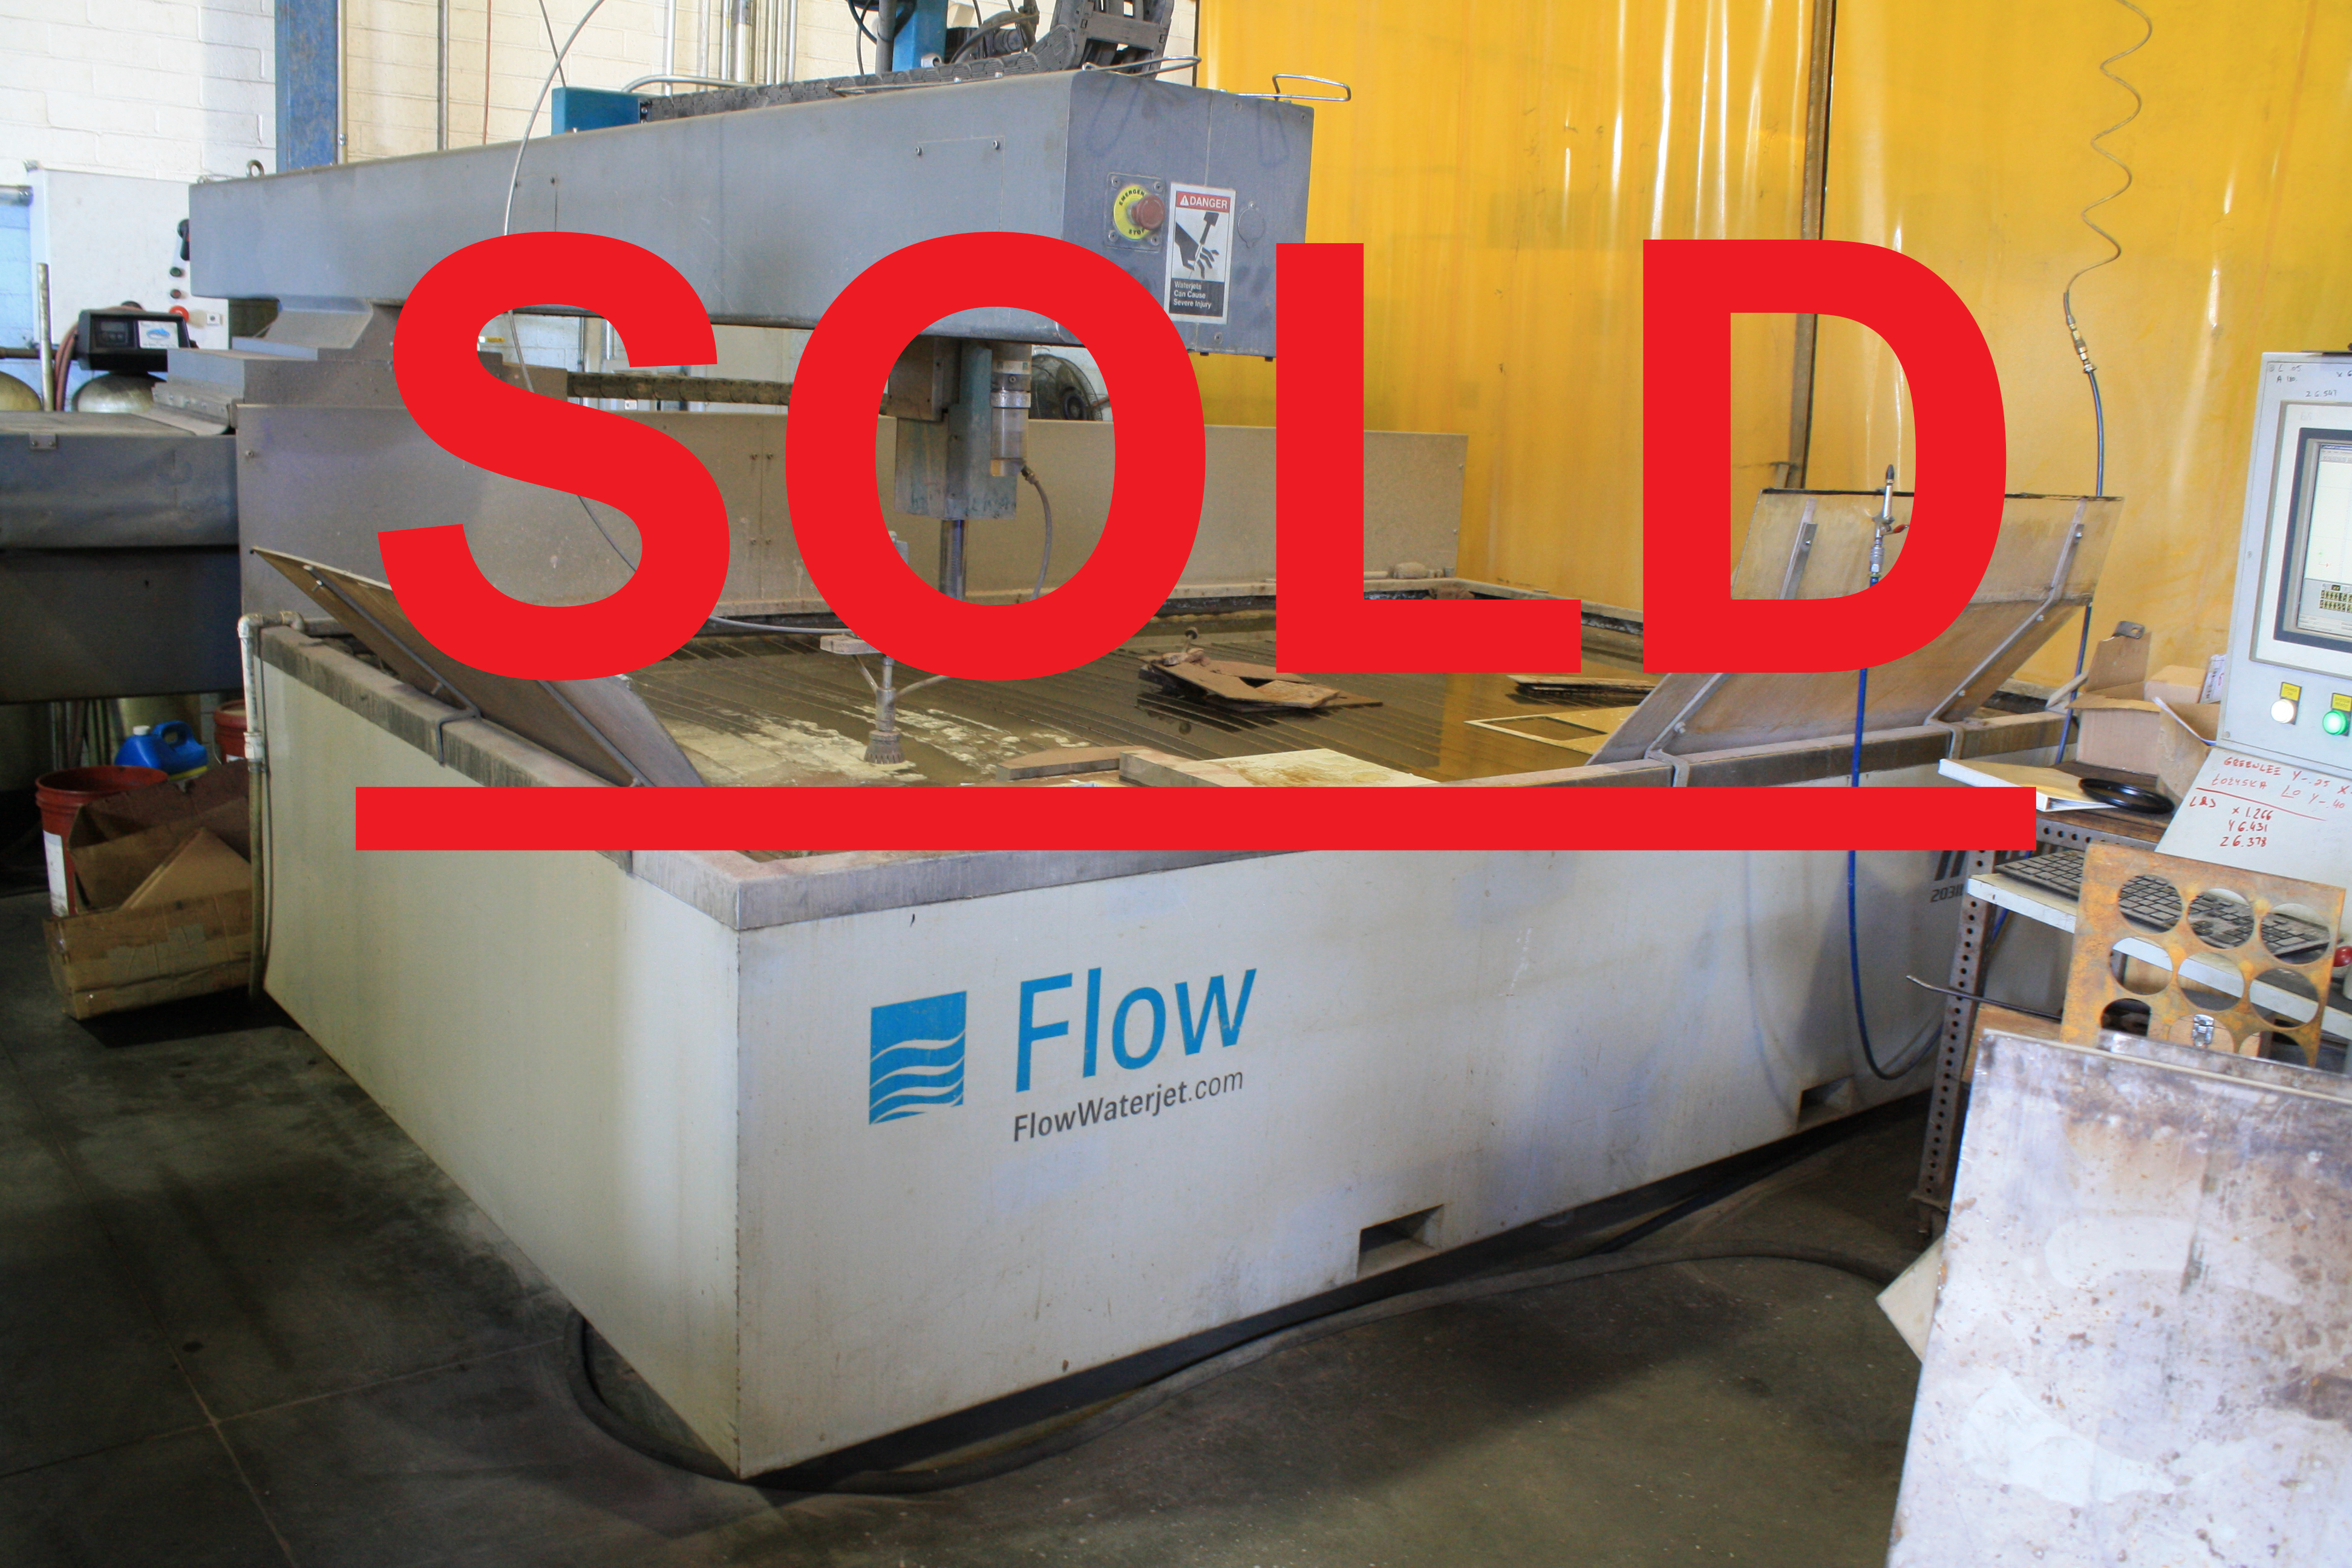 Used Flow Water Jet Mach 2 For Sale